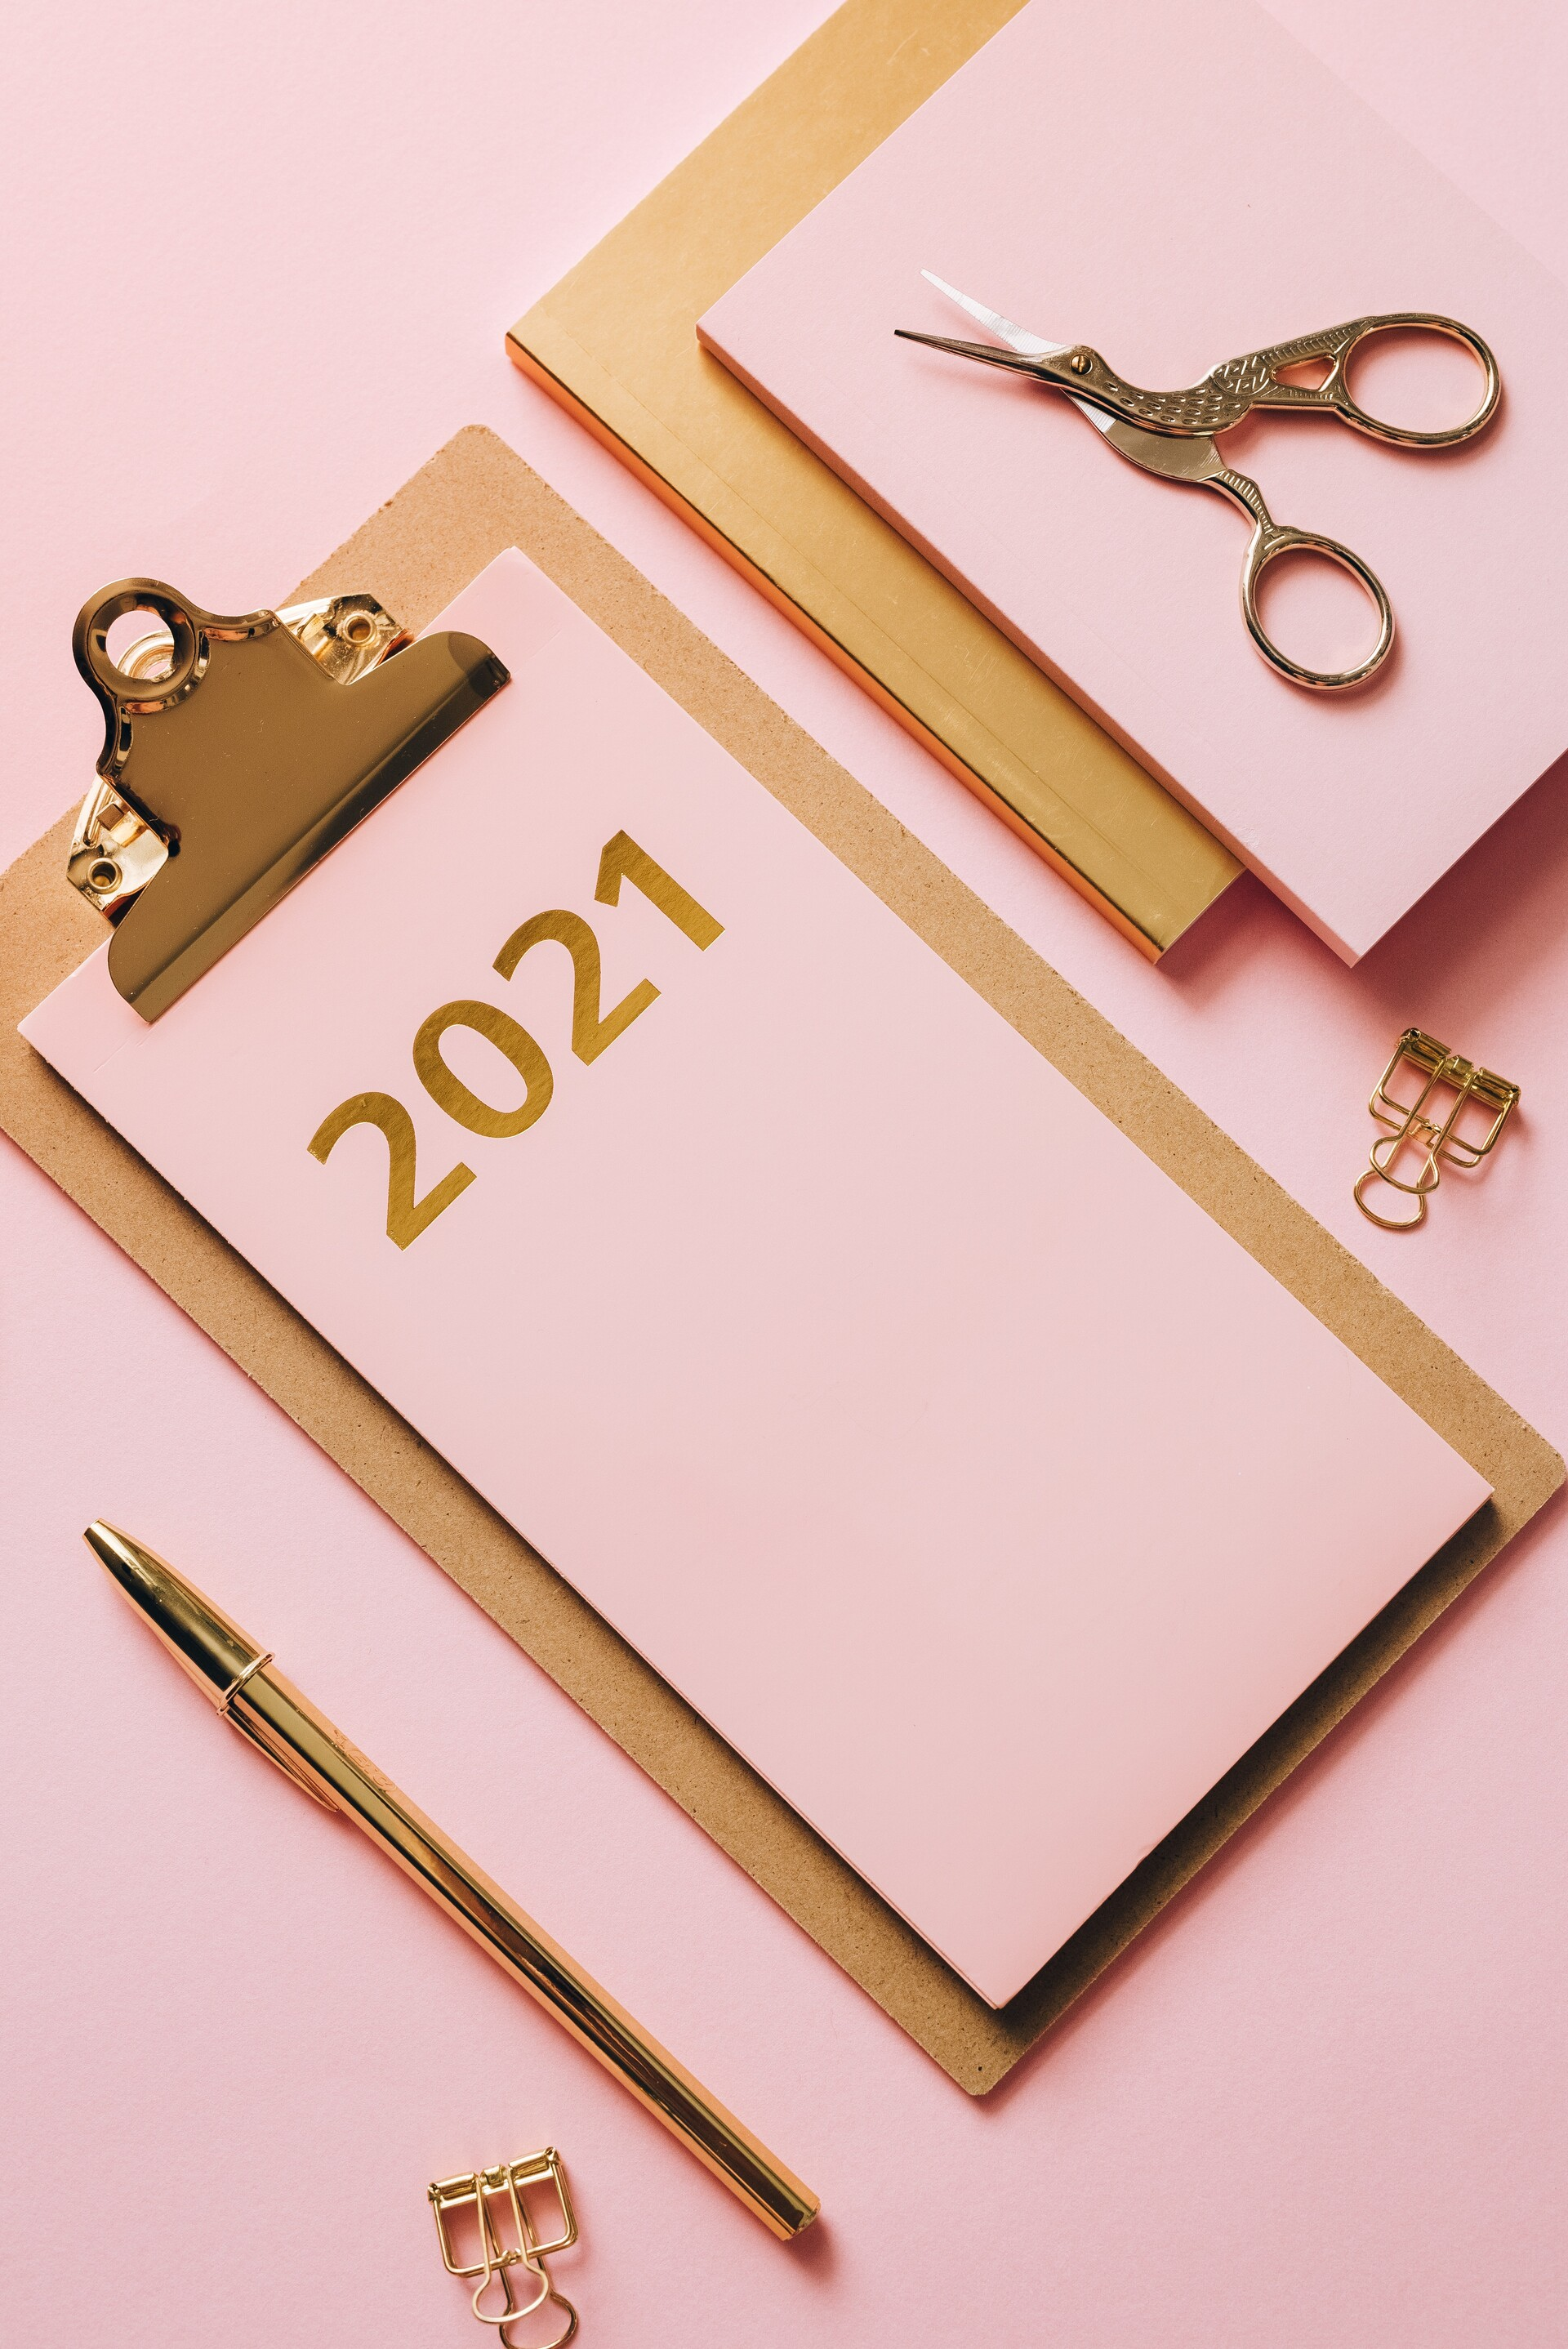 Let's take a look at the world of internships in 2021